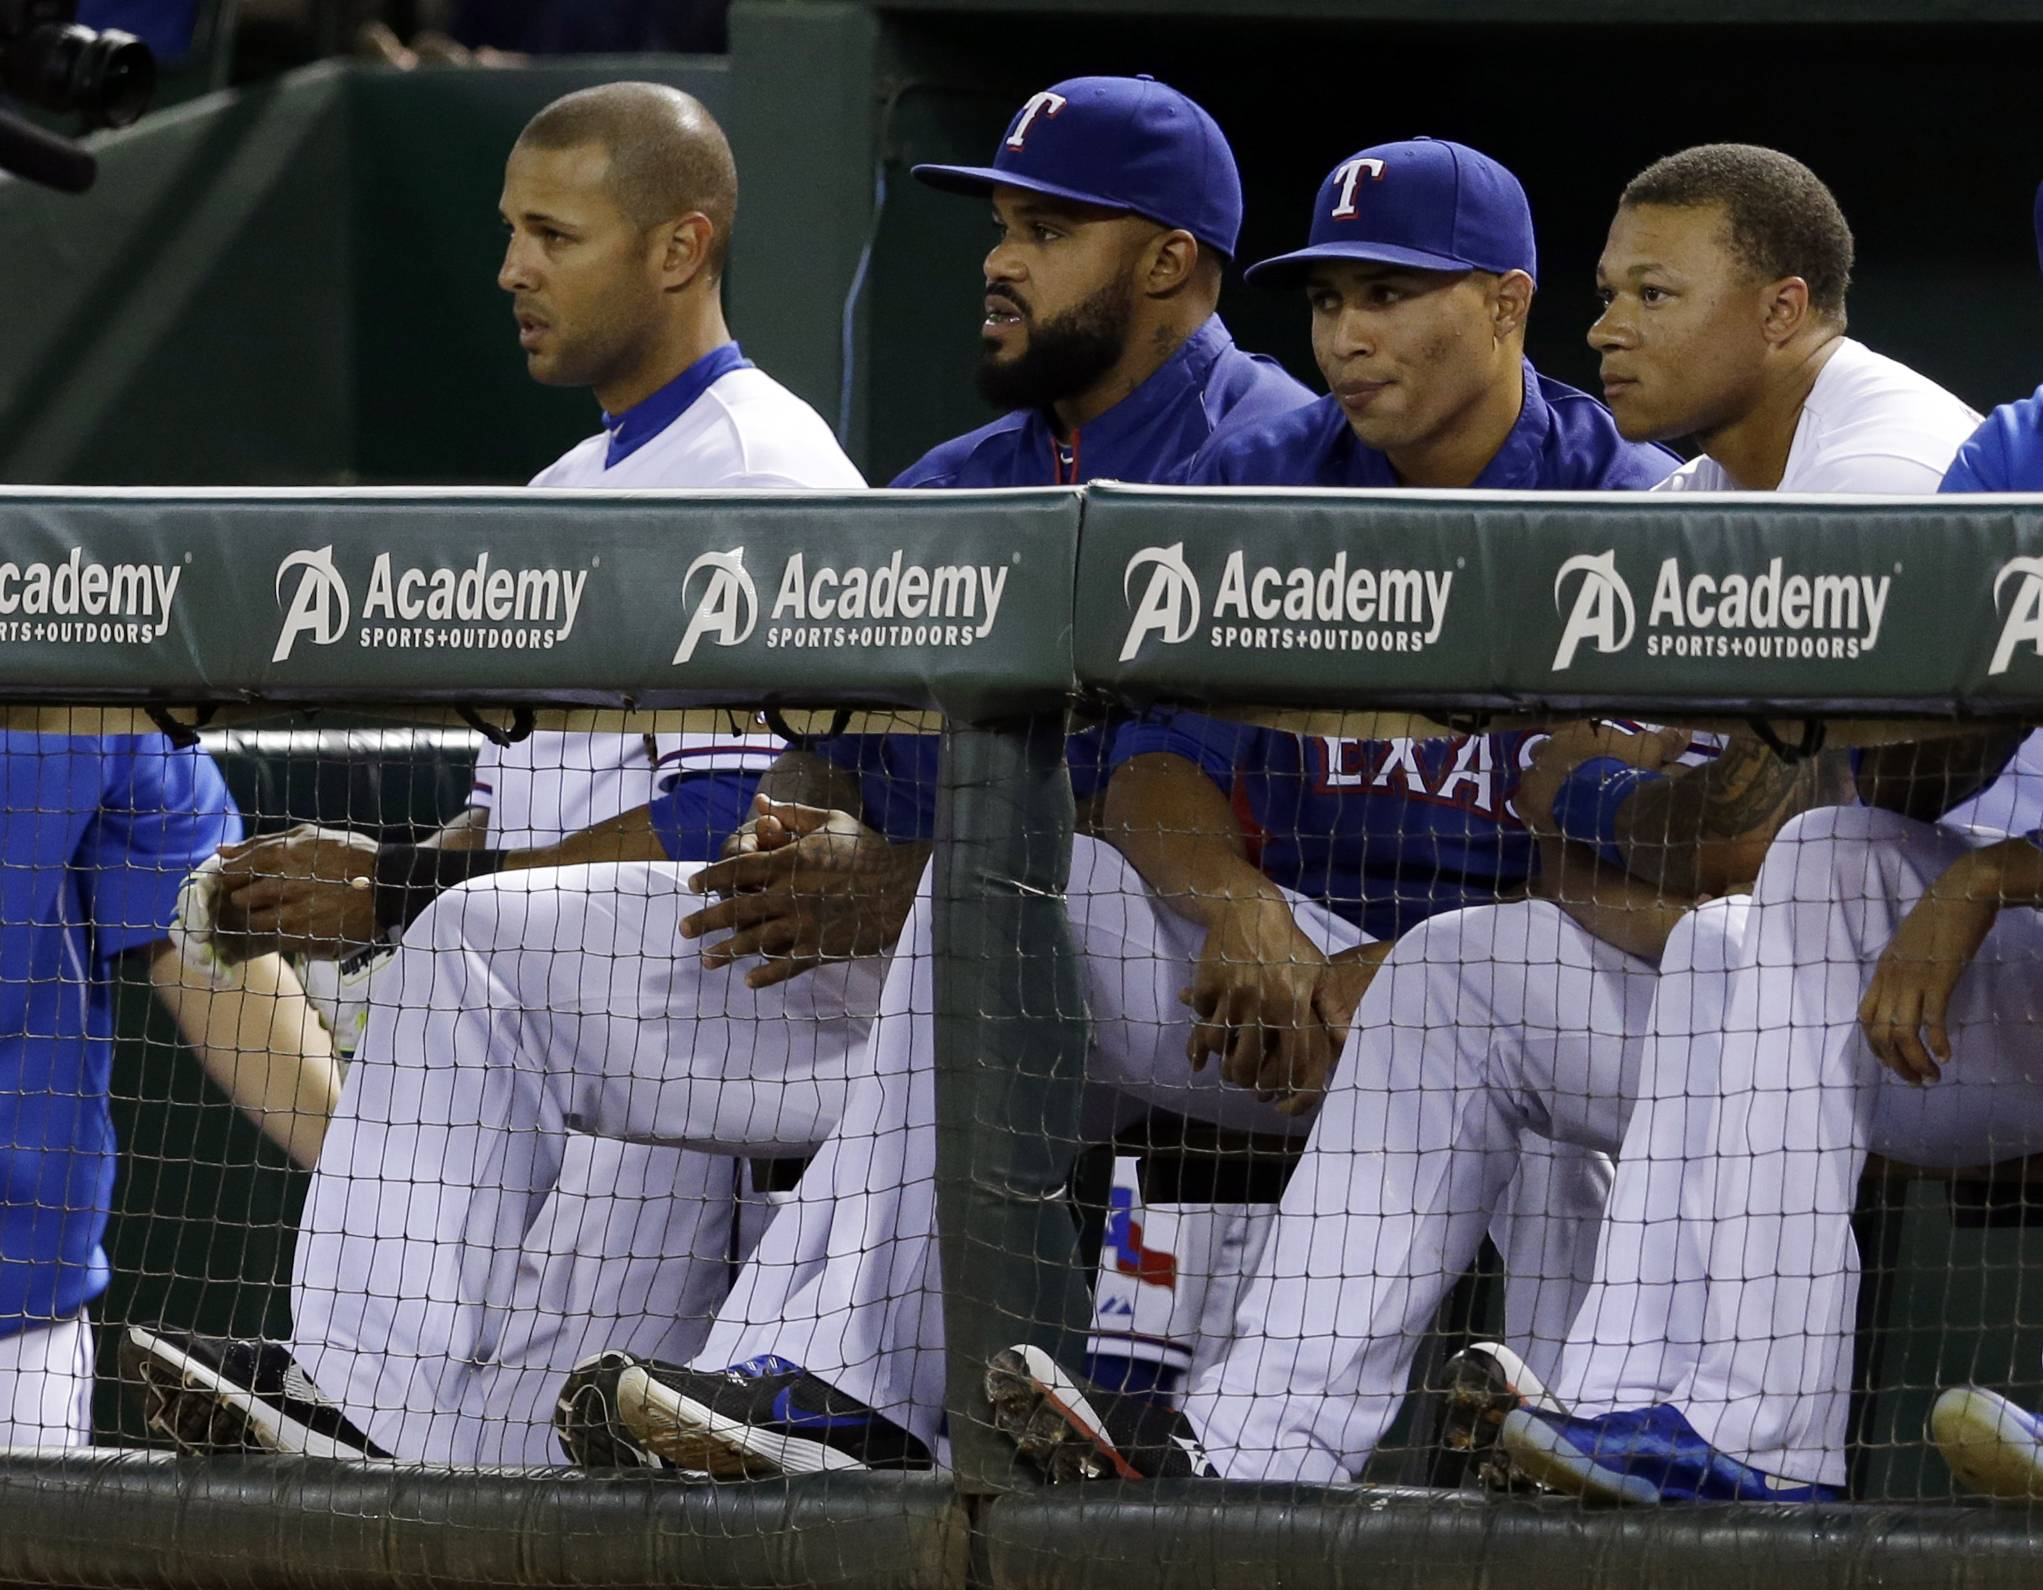 Texas Rangers' Alex Rios, from left, Prince Fielder, Leonys Martin, and Michael Choice, right, watch play in the sixth inning of a baseball game against the Seattle Mariners, Tuesday, May 20, 2014, in Arlington, Texas.